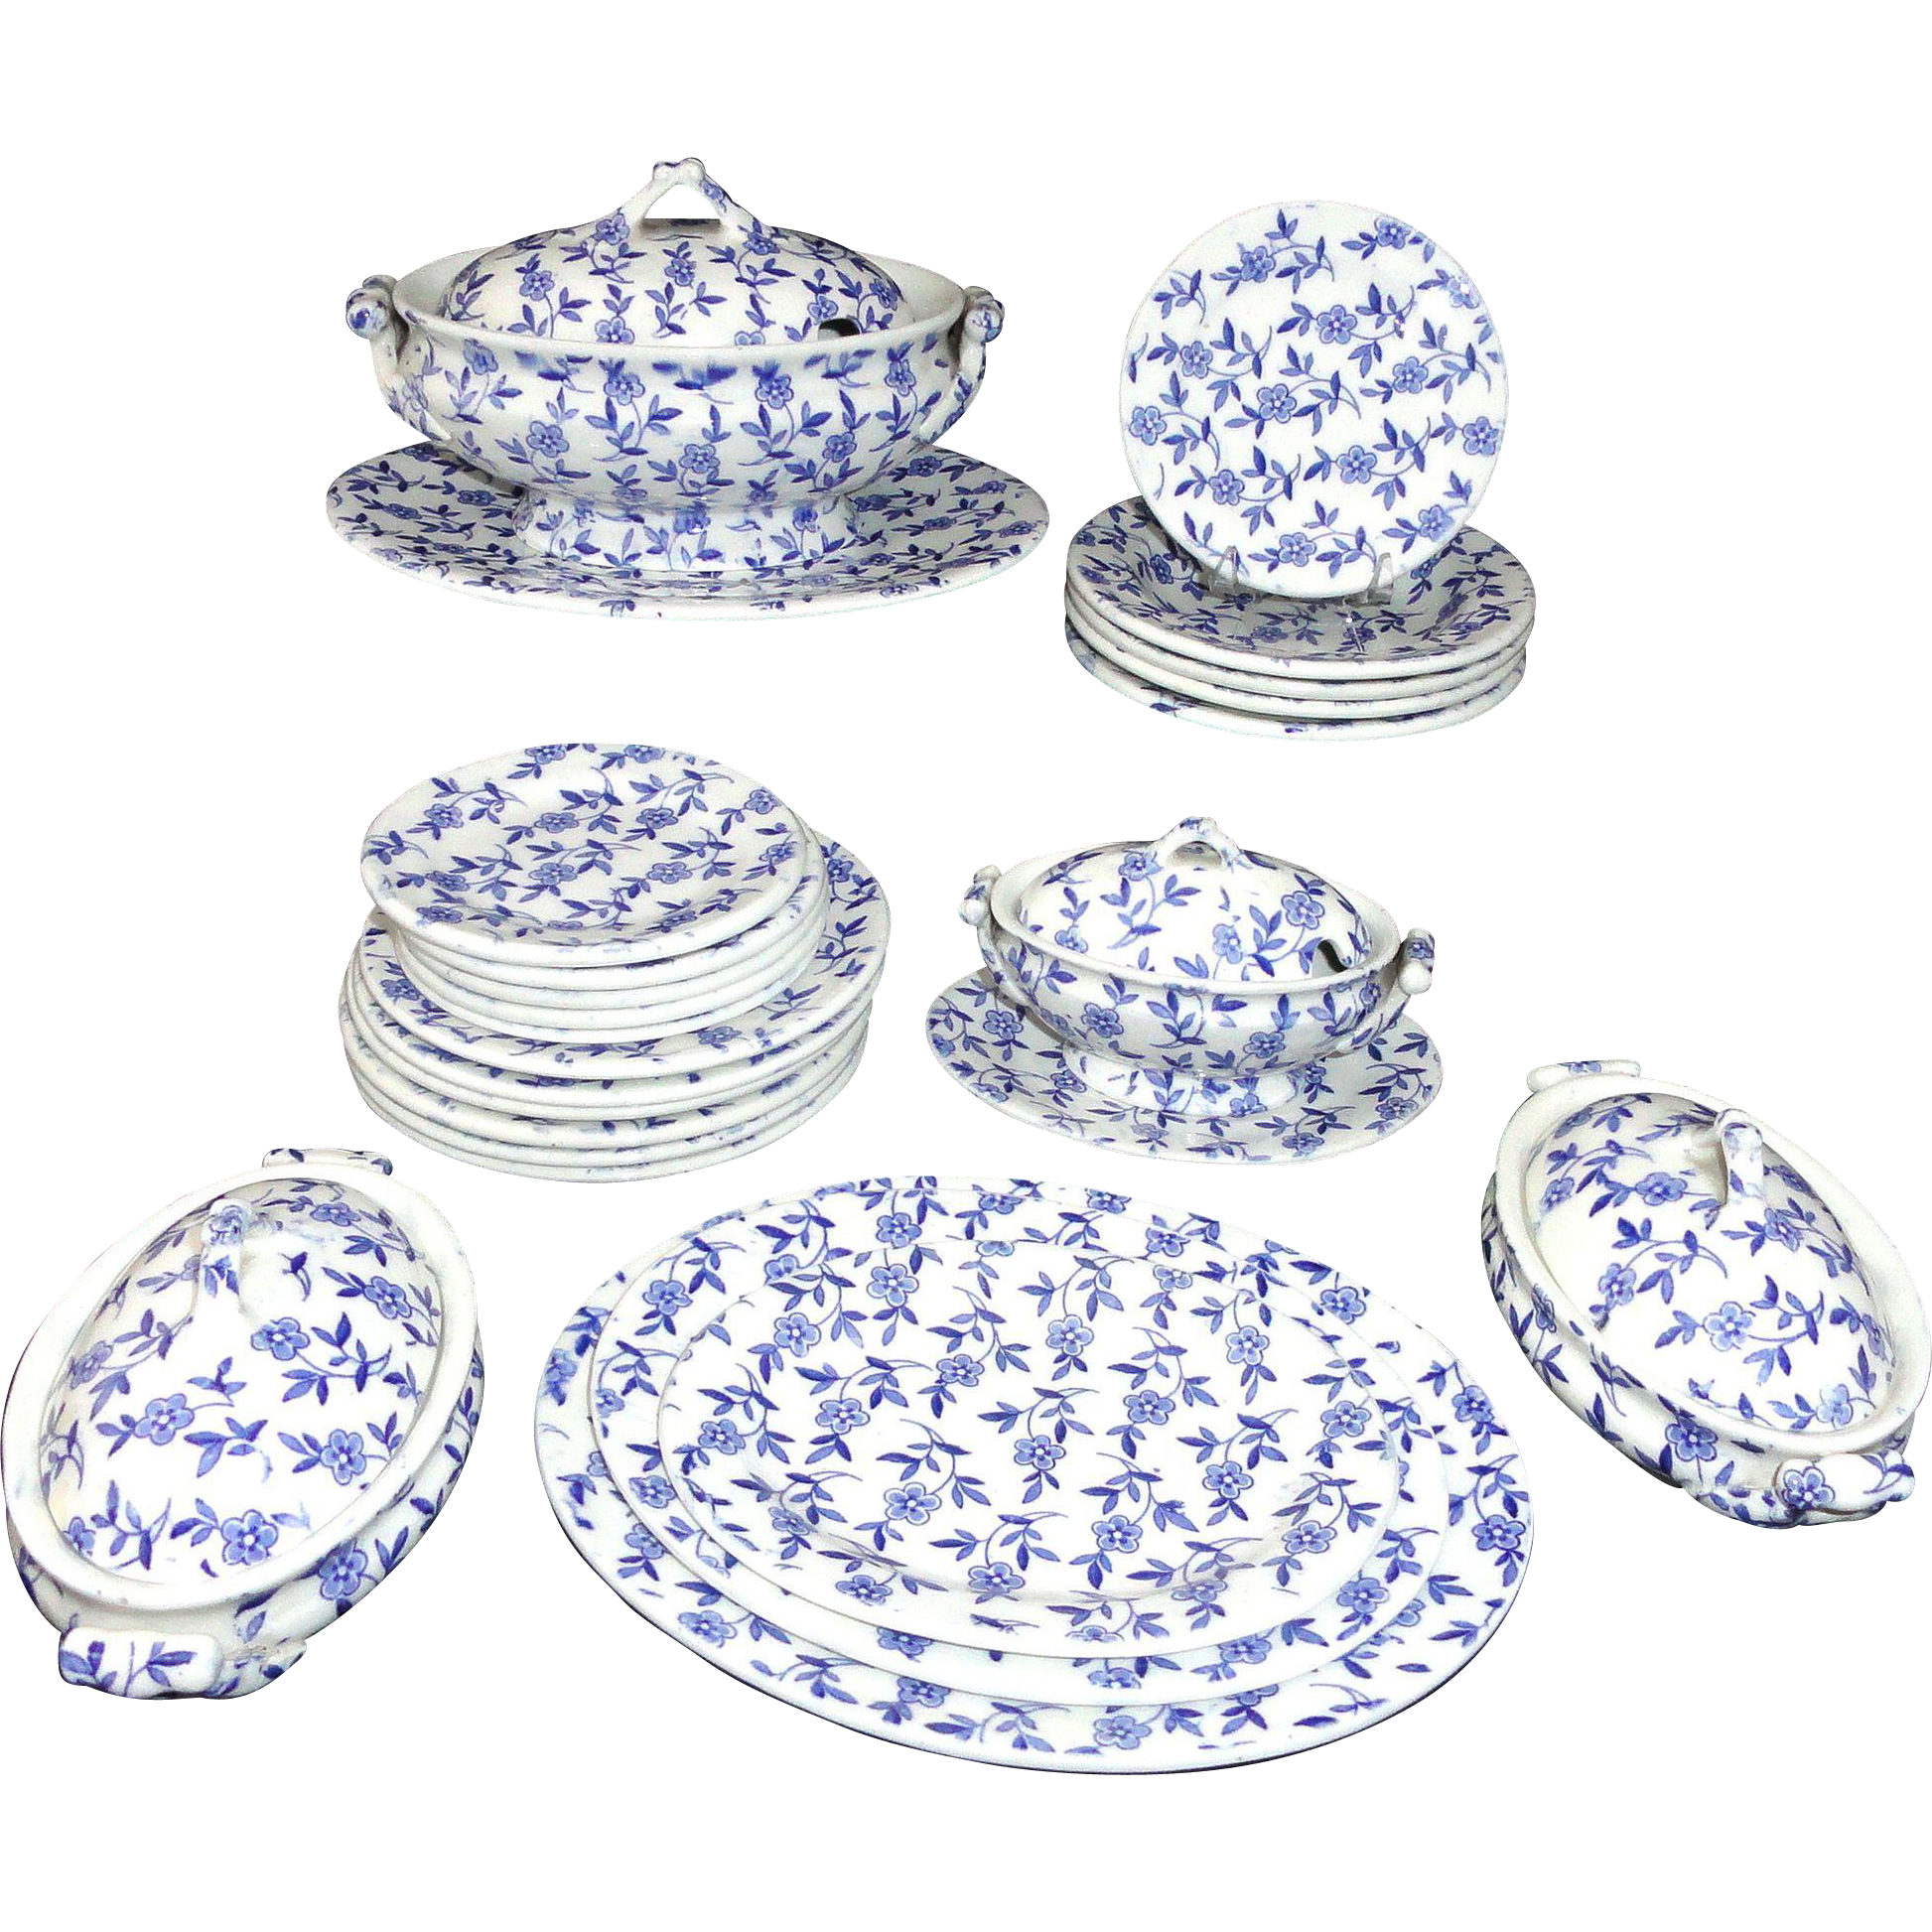 30-piece Childs Ironstone COBALT BLUE Transferware Dinner Set DAISY CHAIN Ridgway Staffordshire c1890